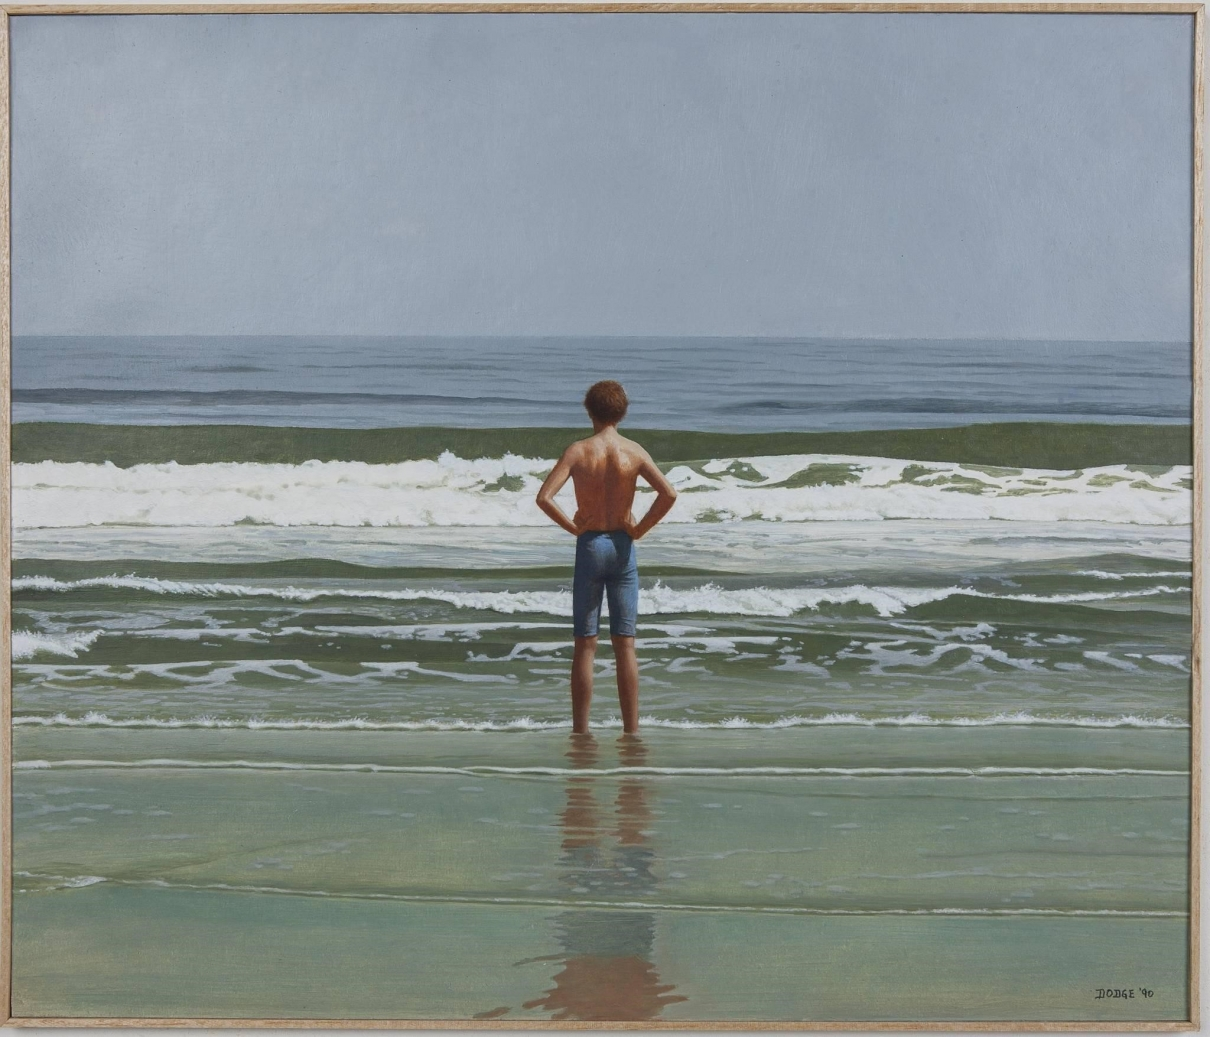 Painting of a young boy wearing swim trunks, with his hands on his hips, standing at the edge of the beach shore. His back is towards the viewer as he faces the white-foam of waves and the ocean.